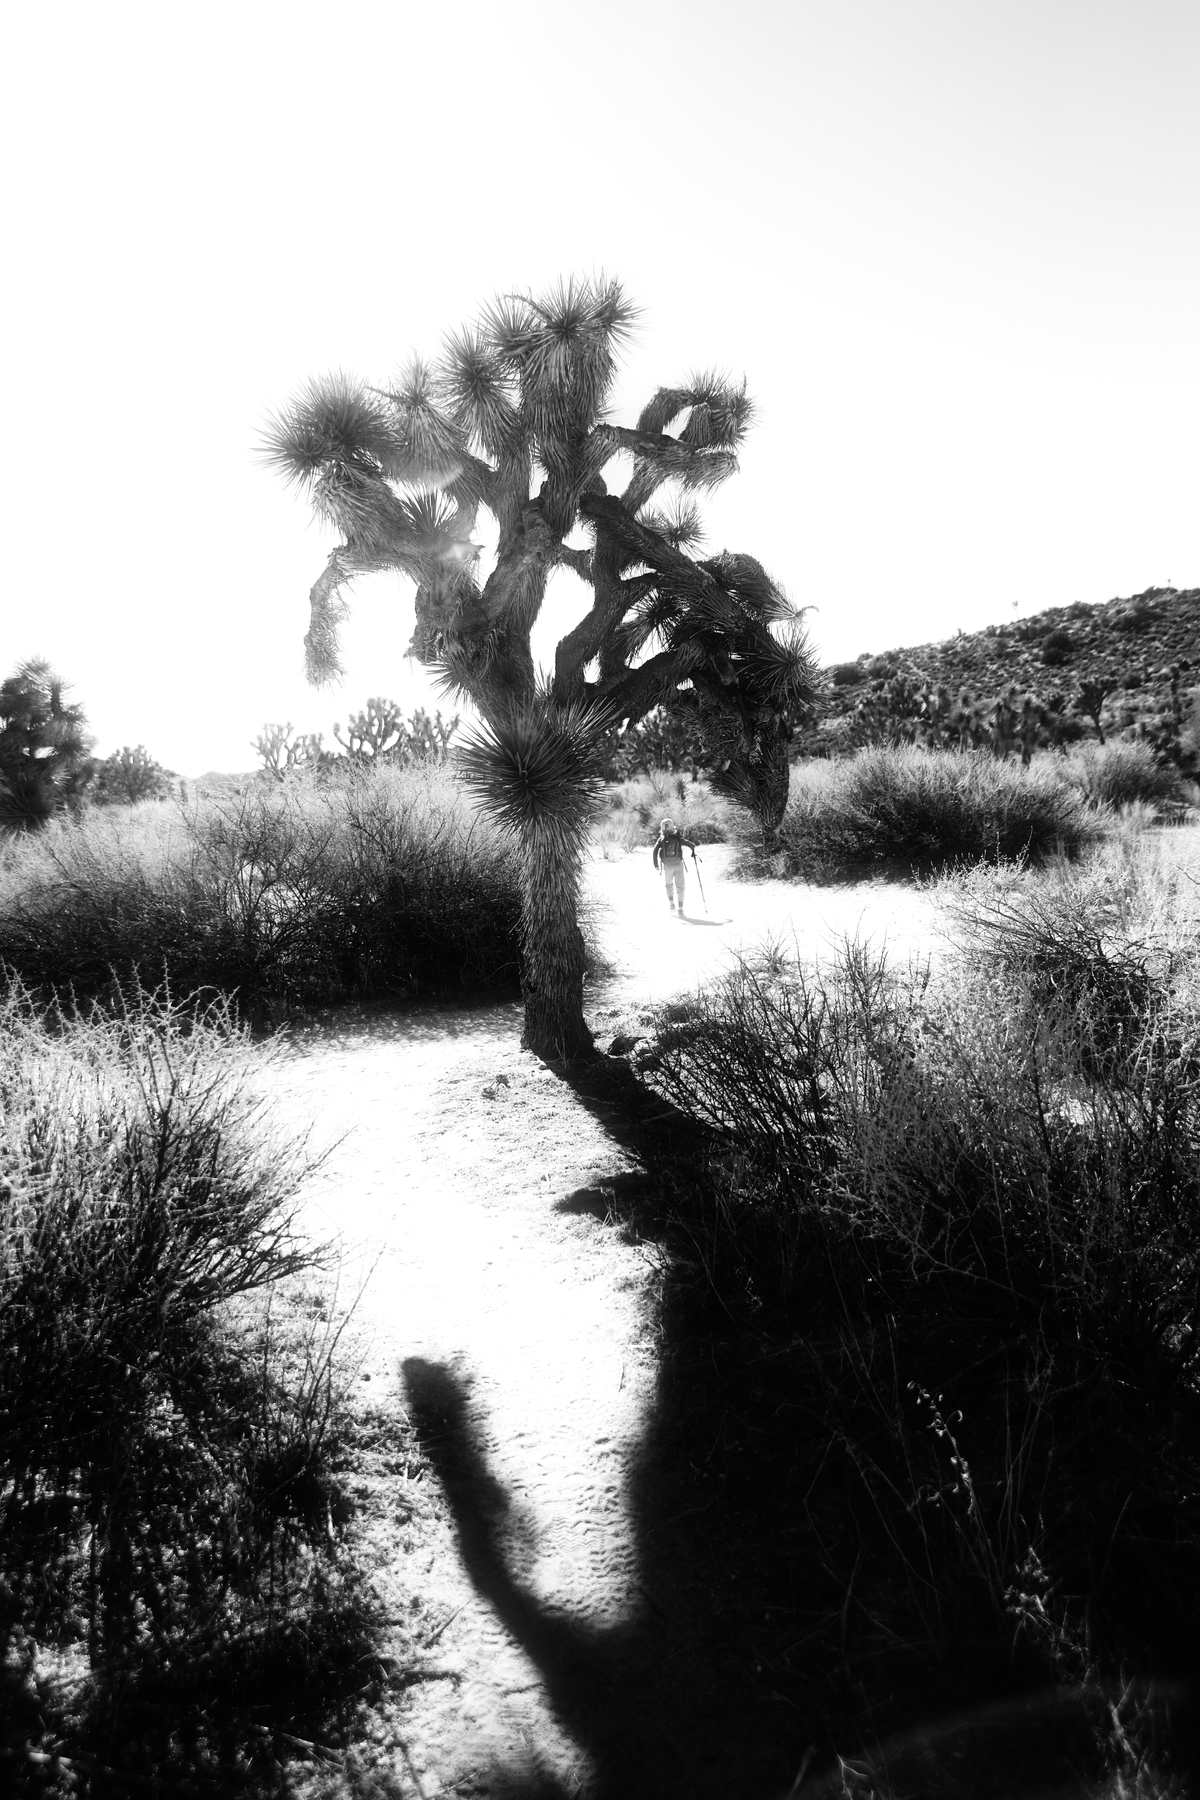 Joshua Tree National Park in the light